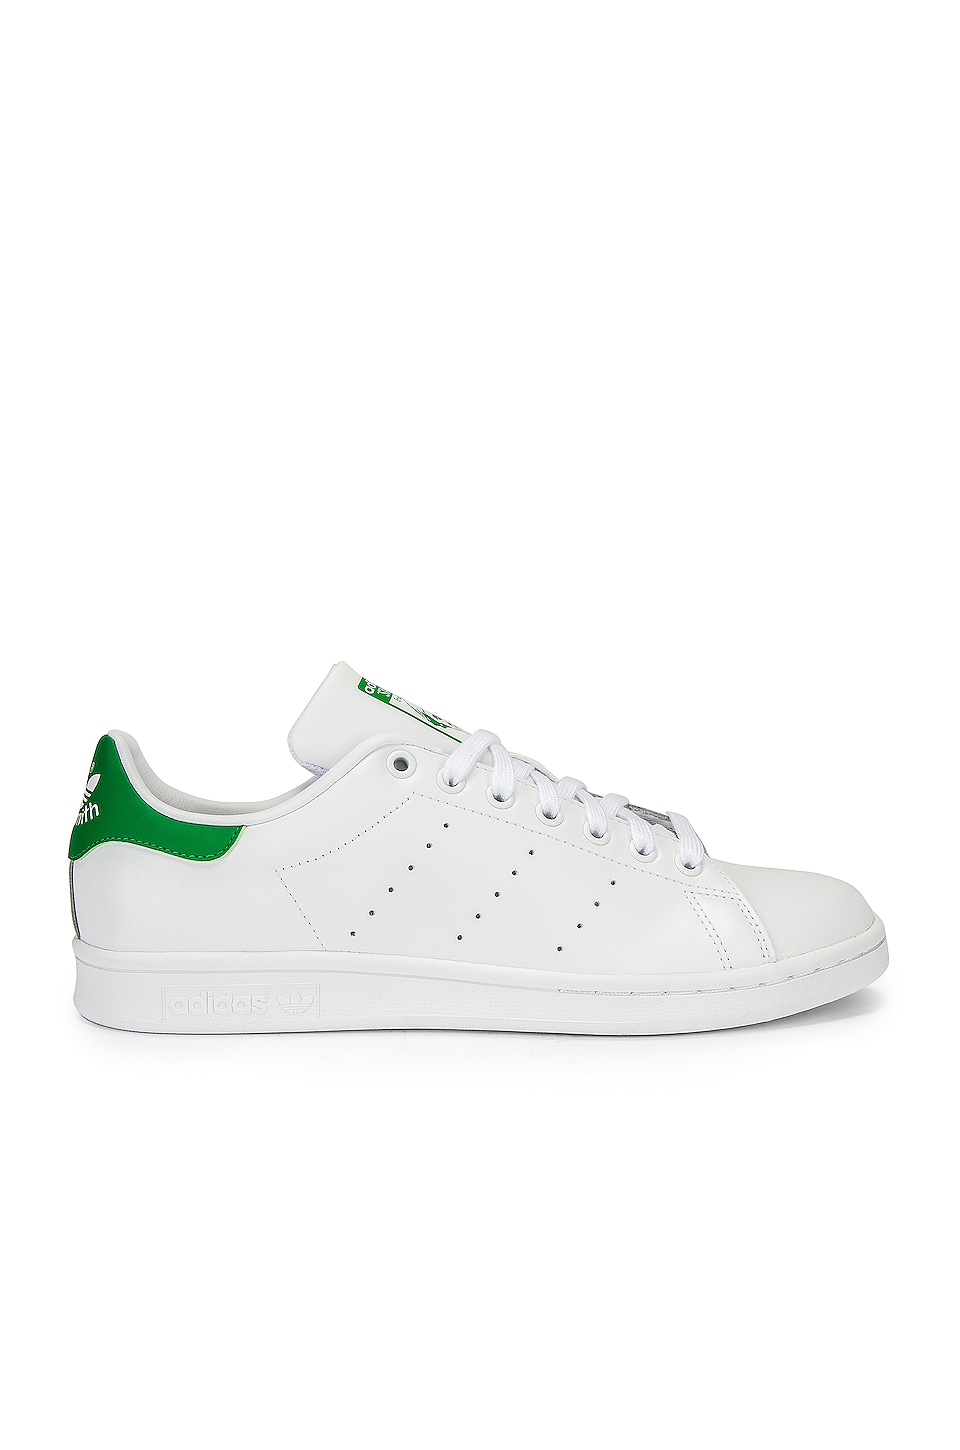 adidas Originals Stan Smith in White & Green